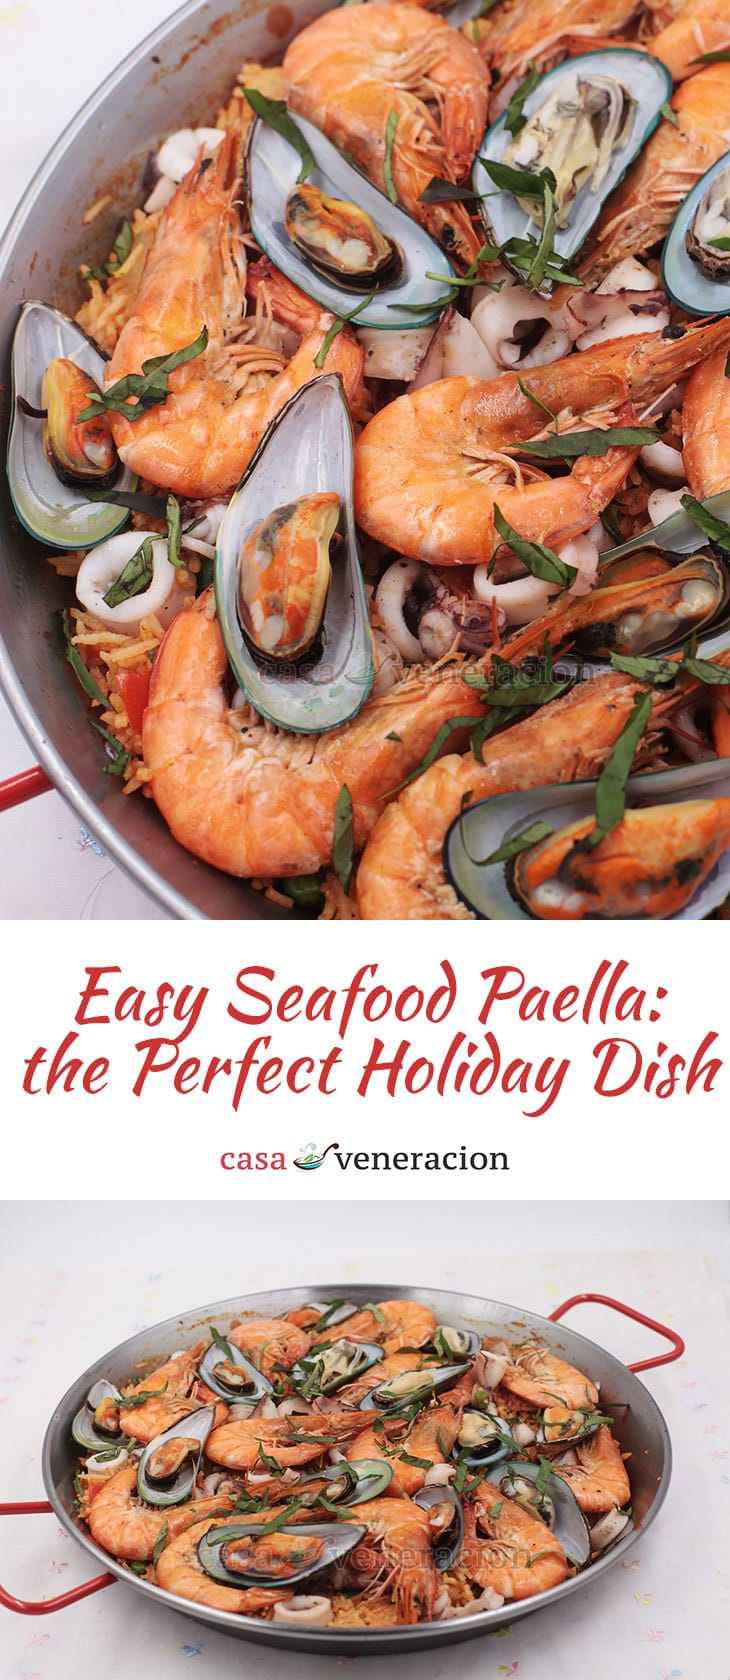 For rice-loving Filipino-Americans who like to pair their Thanksgiving turkey with non-traditional side dishes, here's a non-traditional easy seafood paella recipe.